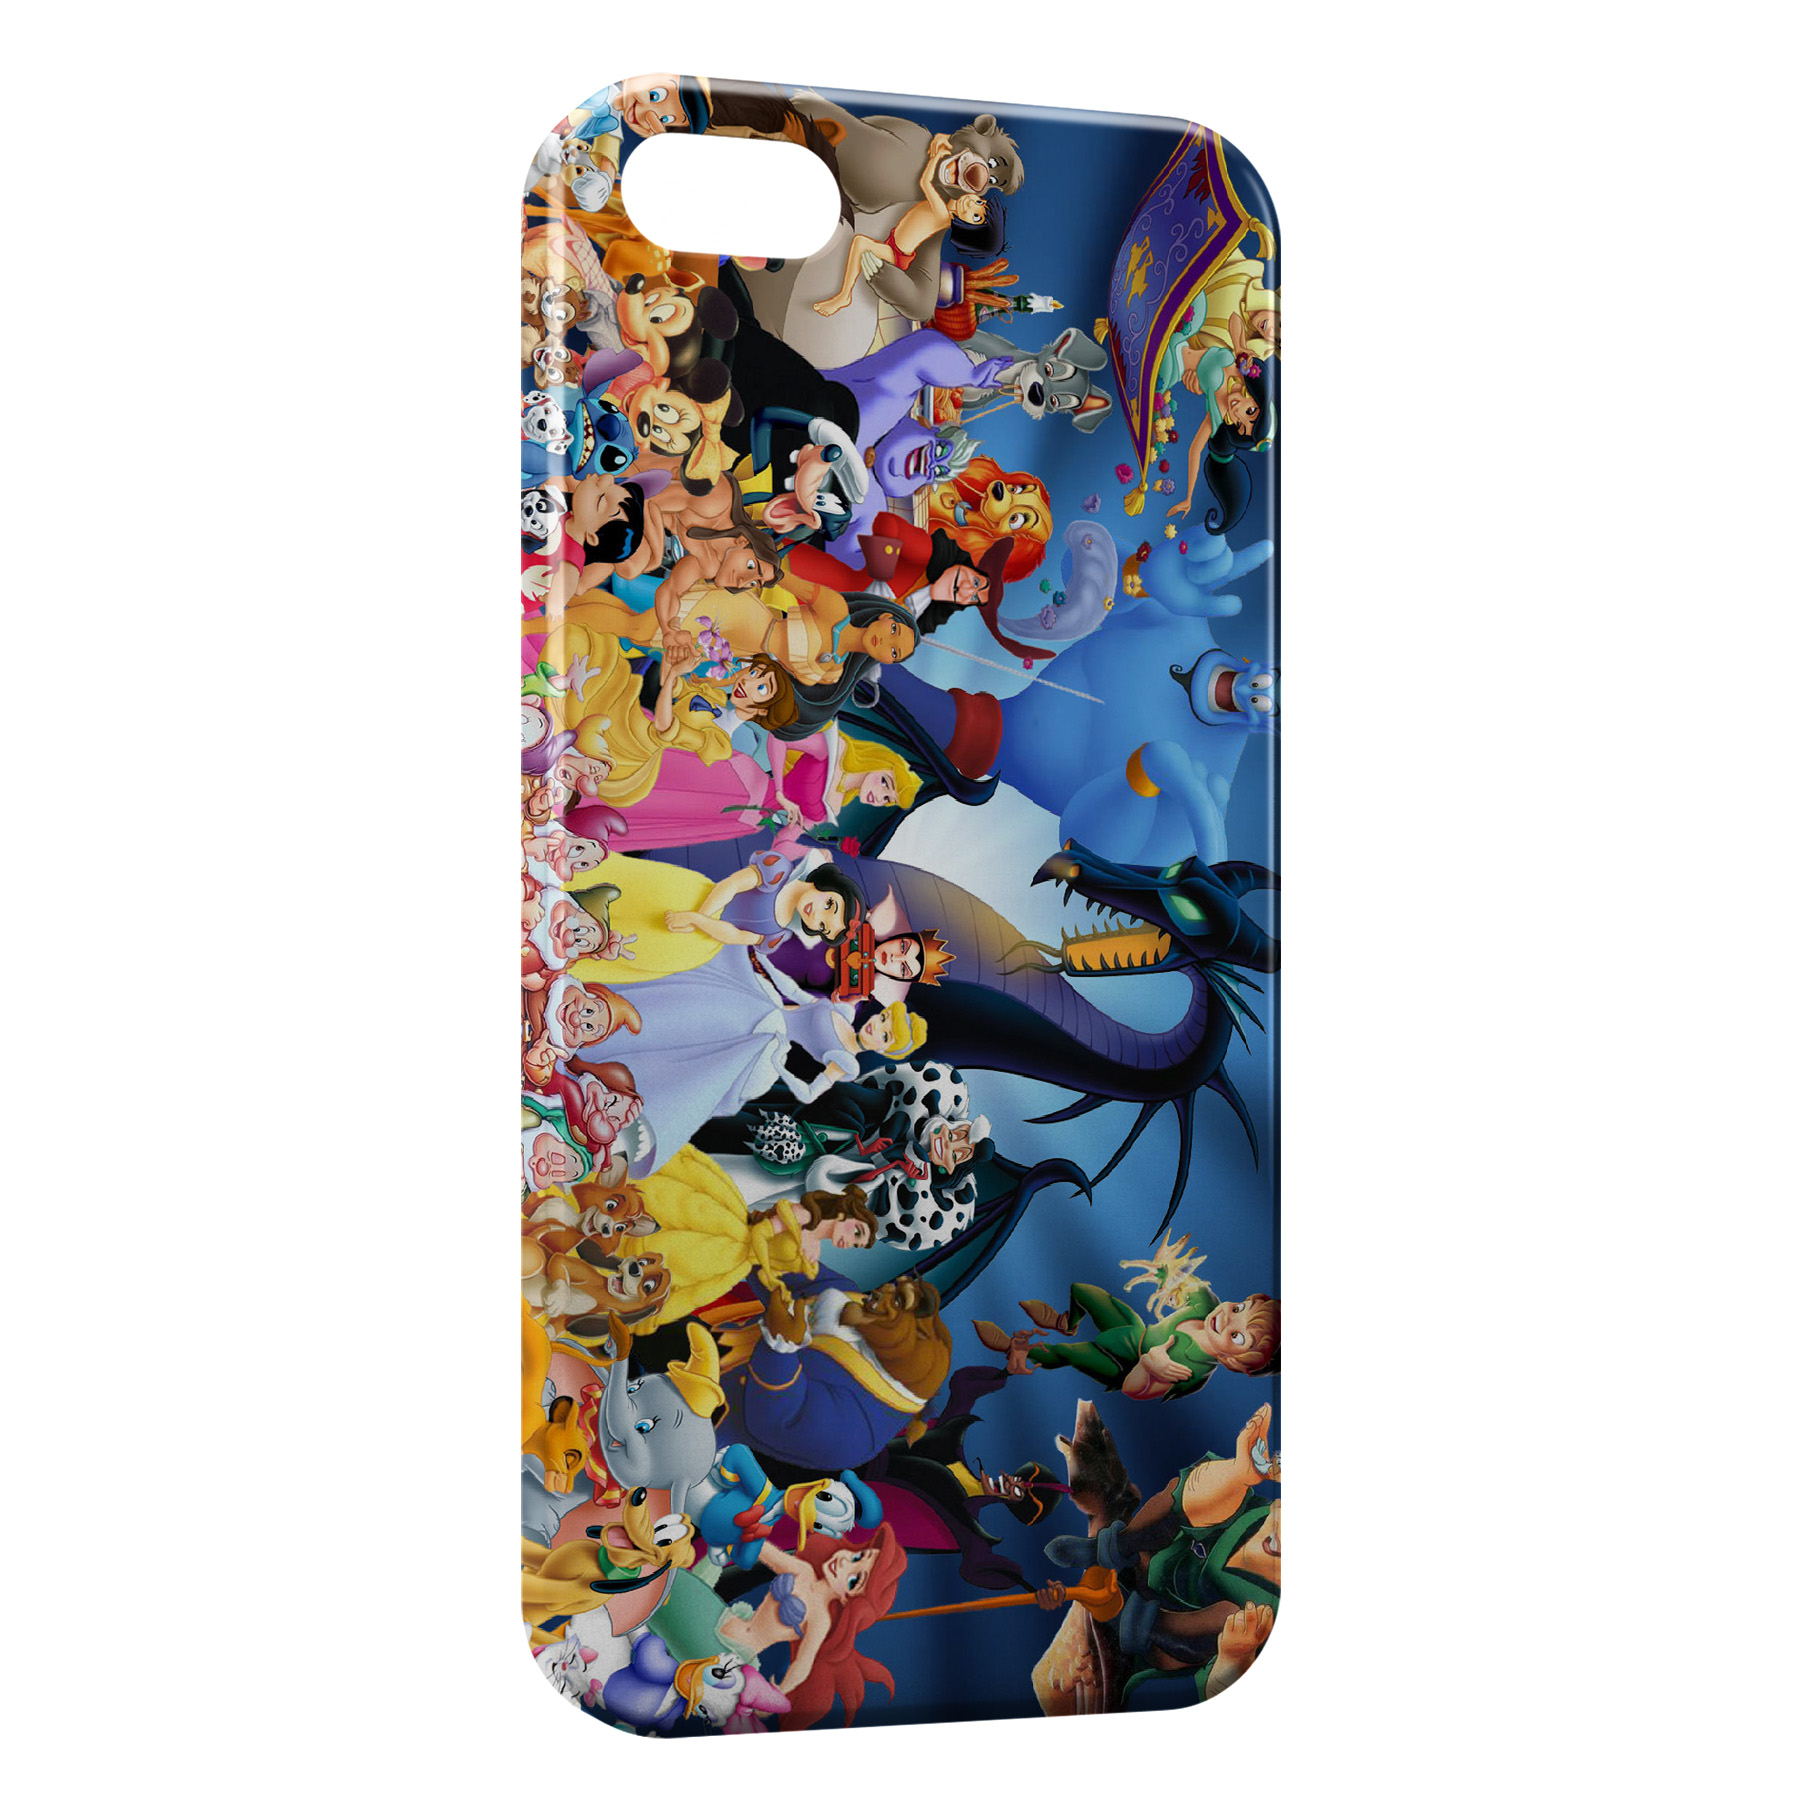 Coque iPhone 6 6S Personnages de Disney